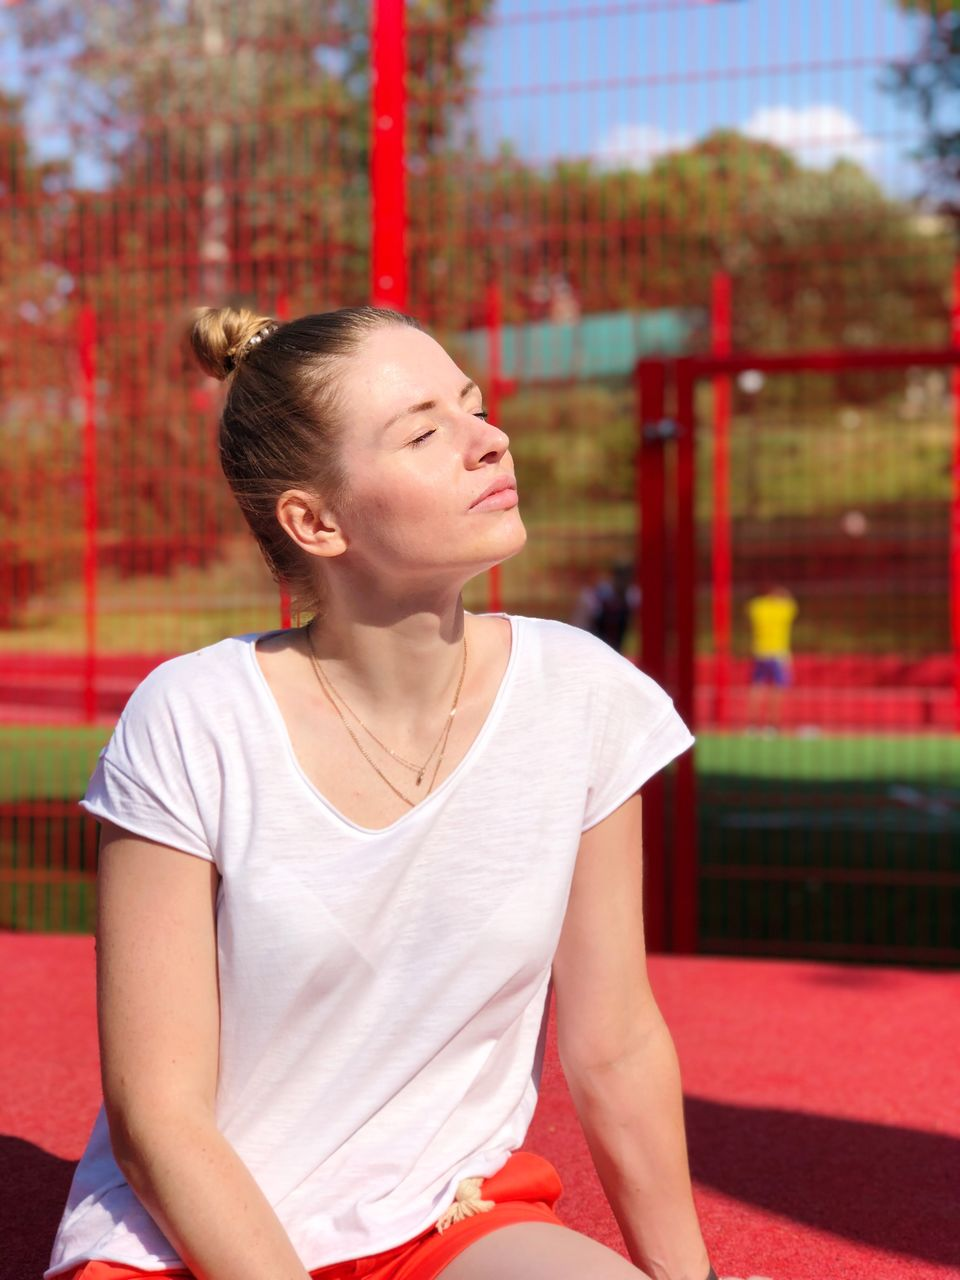 Woman with eyes closed sitting against red fence during sunny day